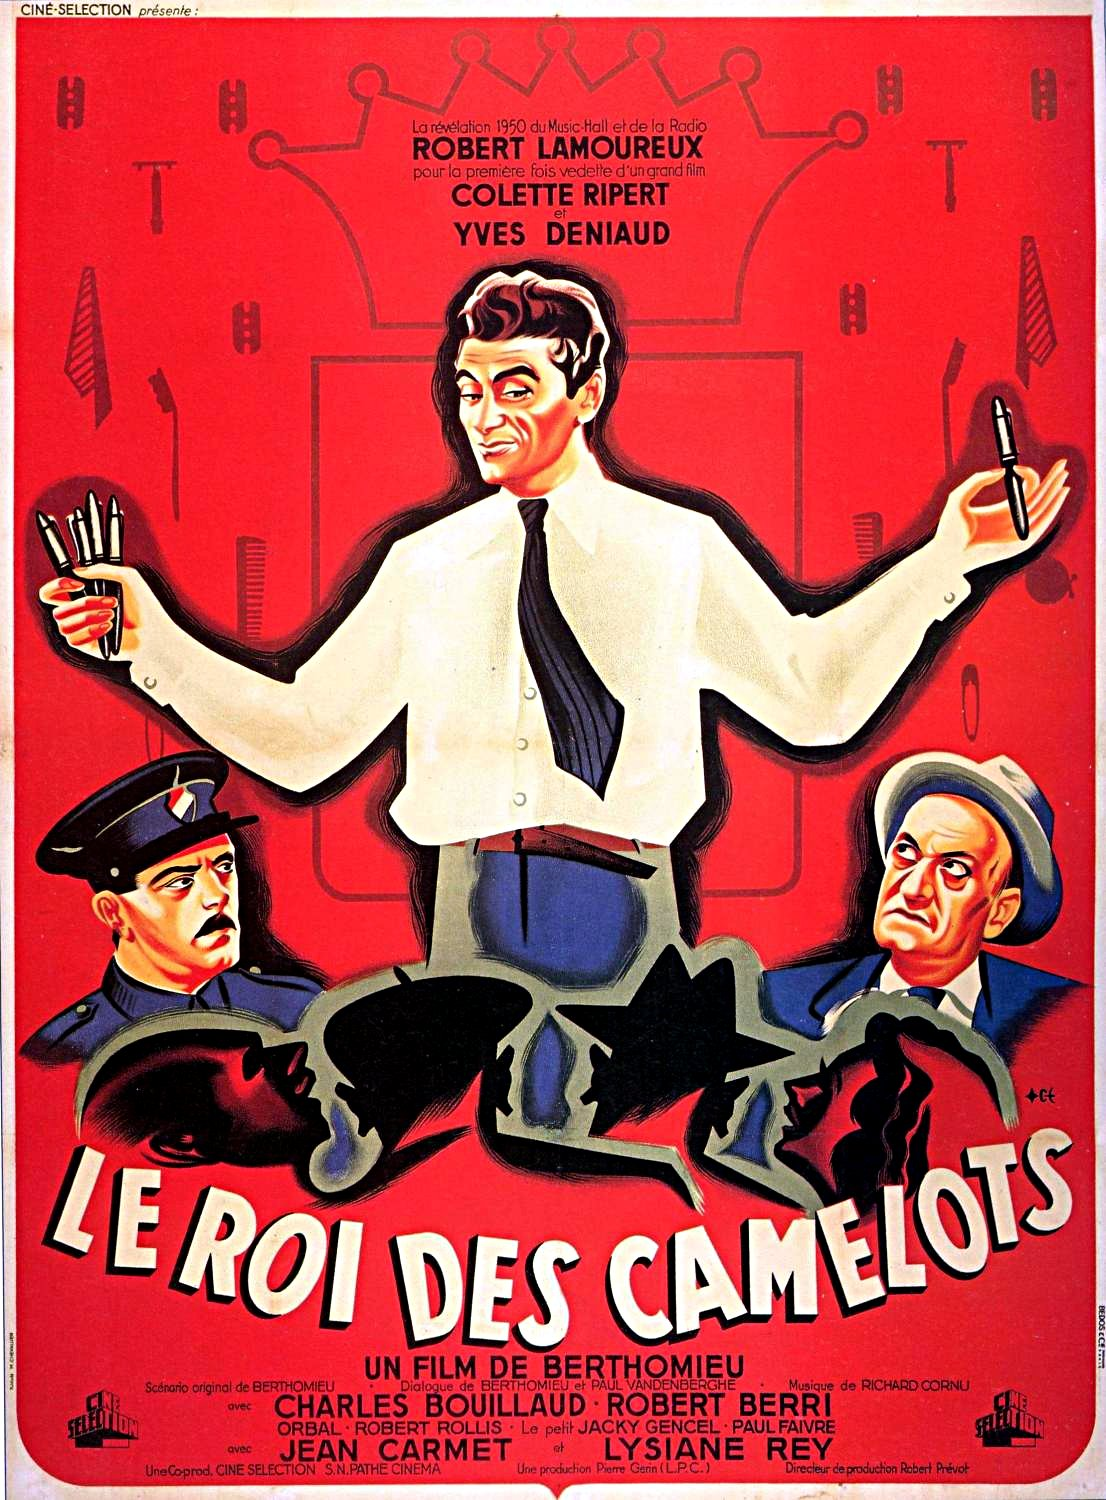 http://images.fan-de-cinema.com/affiches/large/50/64664.jpg